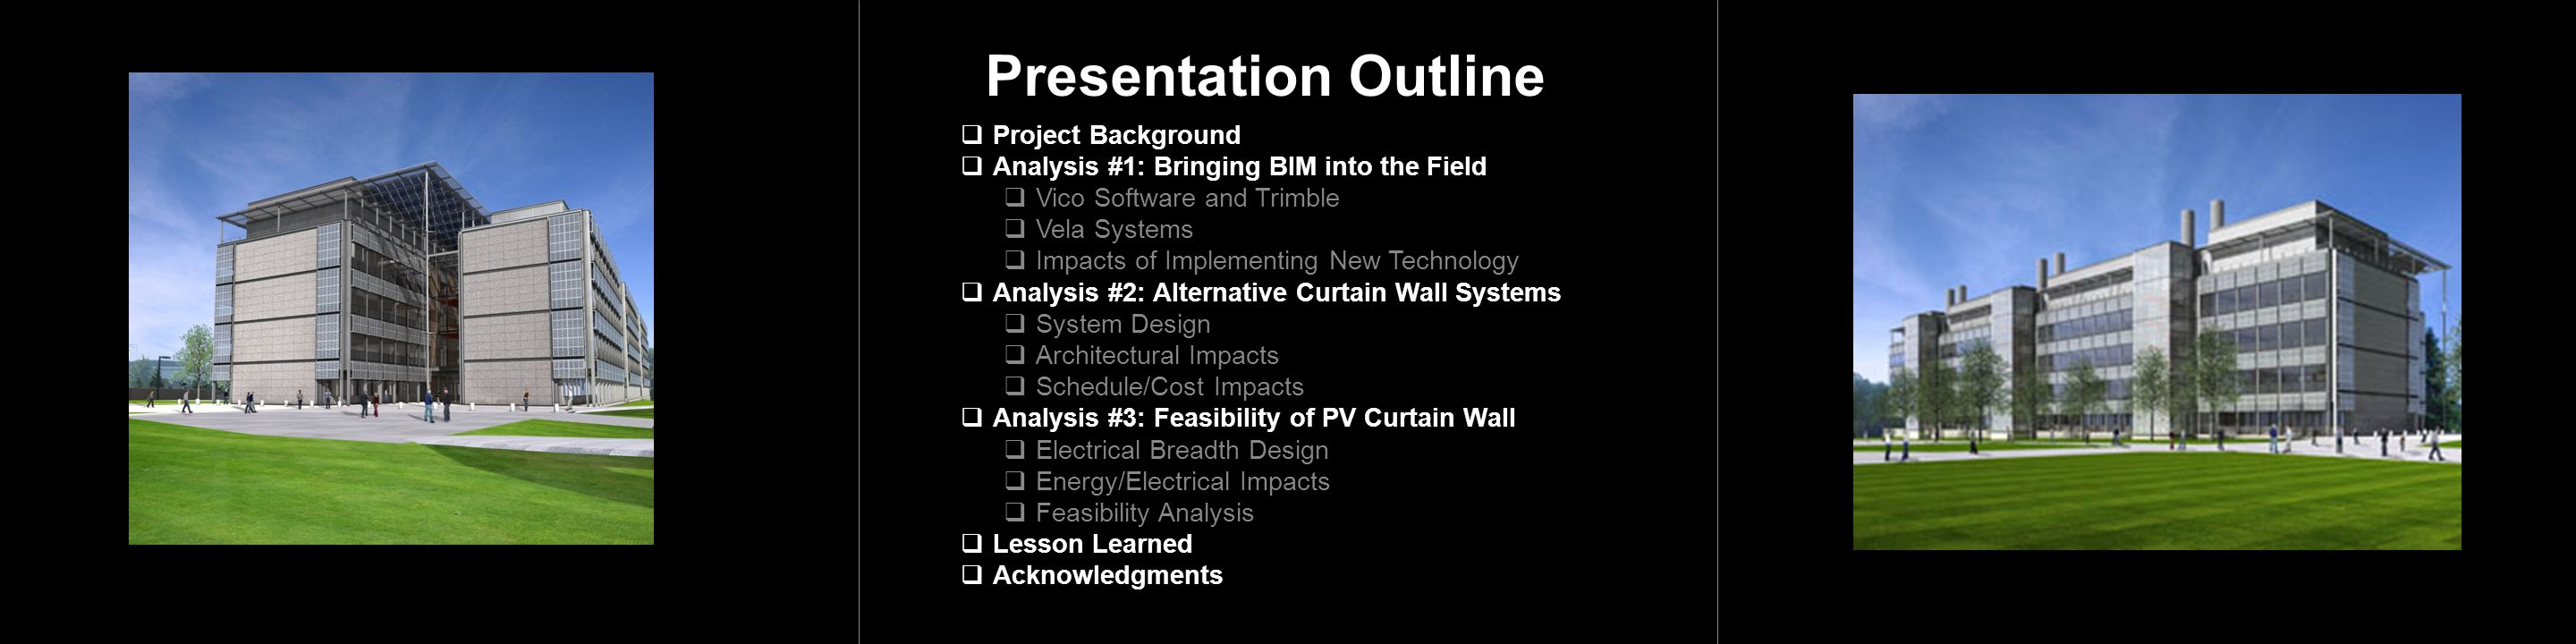  Project Background  Analysis #1: Bringing BIM Into the Field  Analysis #2: Alternative Curtain Wall Systems  System Design  Architectural Impacts  Schedule/Cost Impacts  Analysis #3 : Feasibility of PV Curtain Wall System  Lessons Learned  Acknowledgments & Questions Michael Gallagher AE Senior Thesis 2011 Construction Management Advisor: Dr.